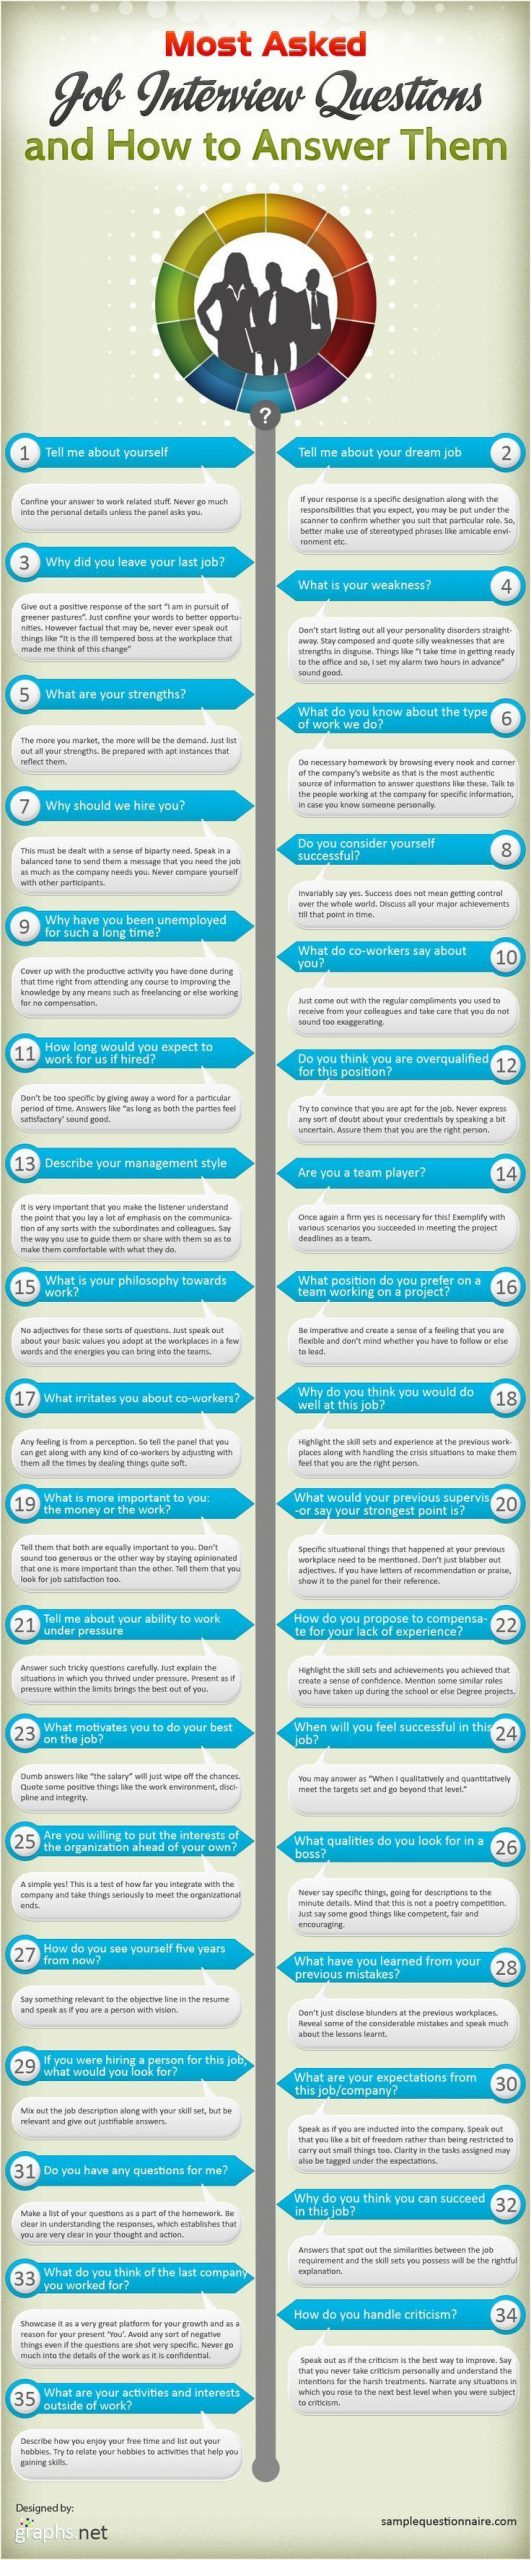 Job Interview Questions and Answers iNFOGRAPHiCs MANiA